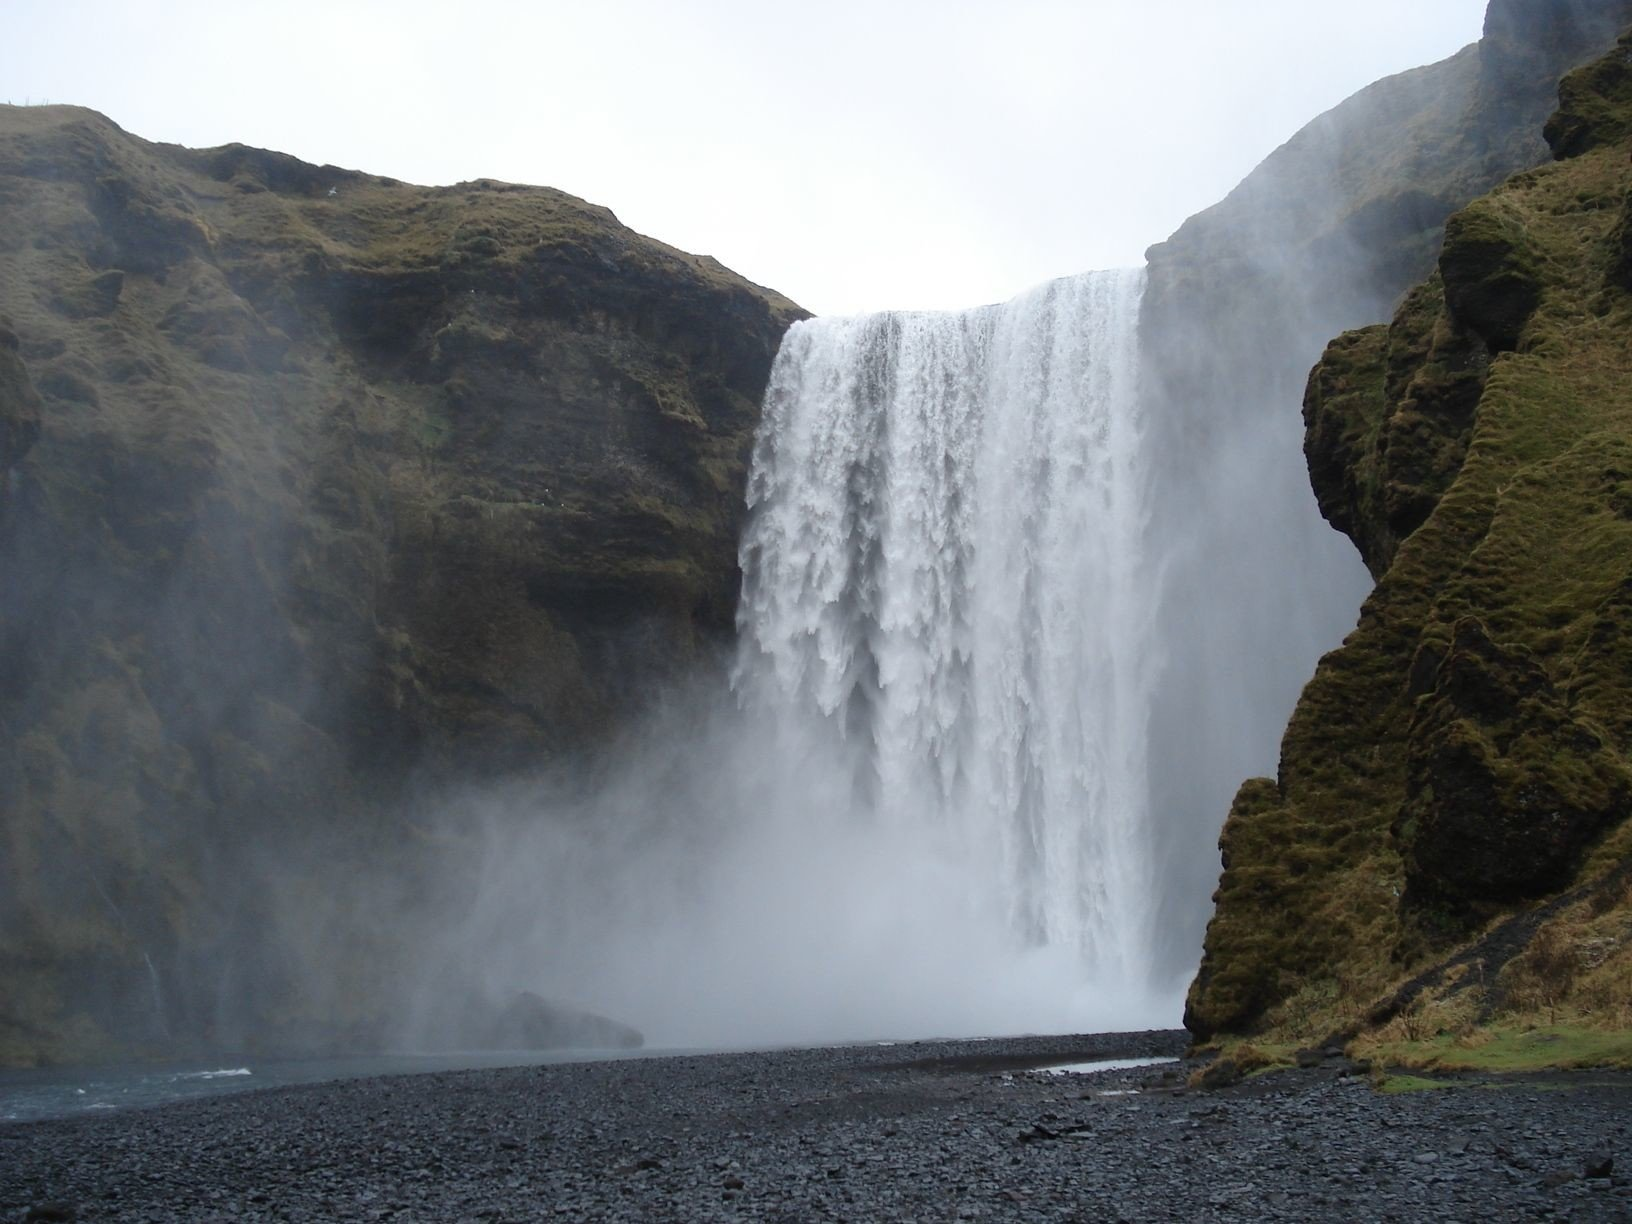 Iceland Outdoors + Adventure mountain Nature outdoor Waterfall rock body of water atmospheric phenomenon water water feature Coast cliff Sea wasserfall terrain fjord